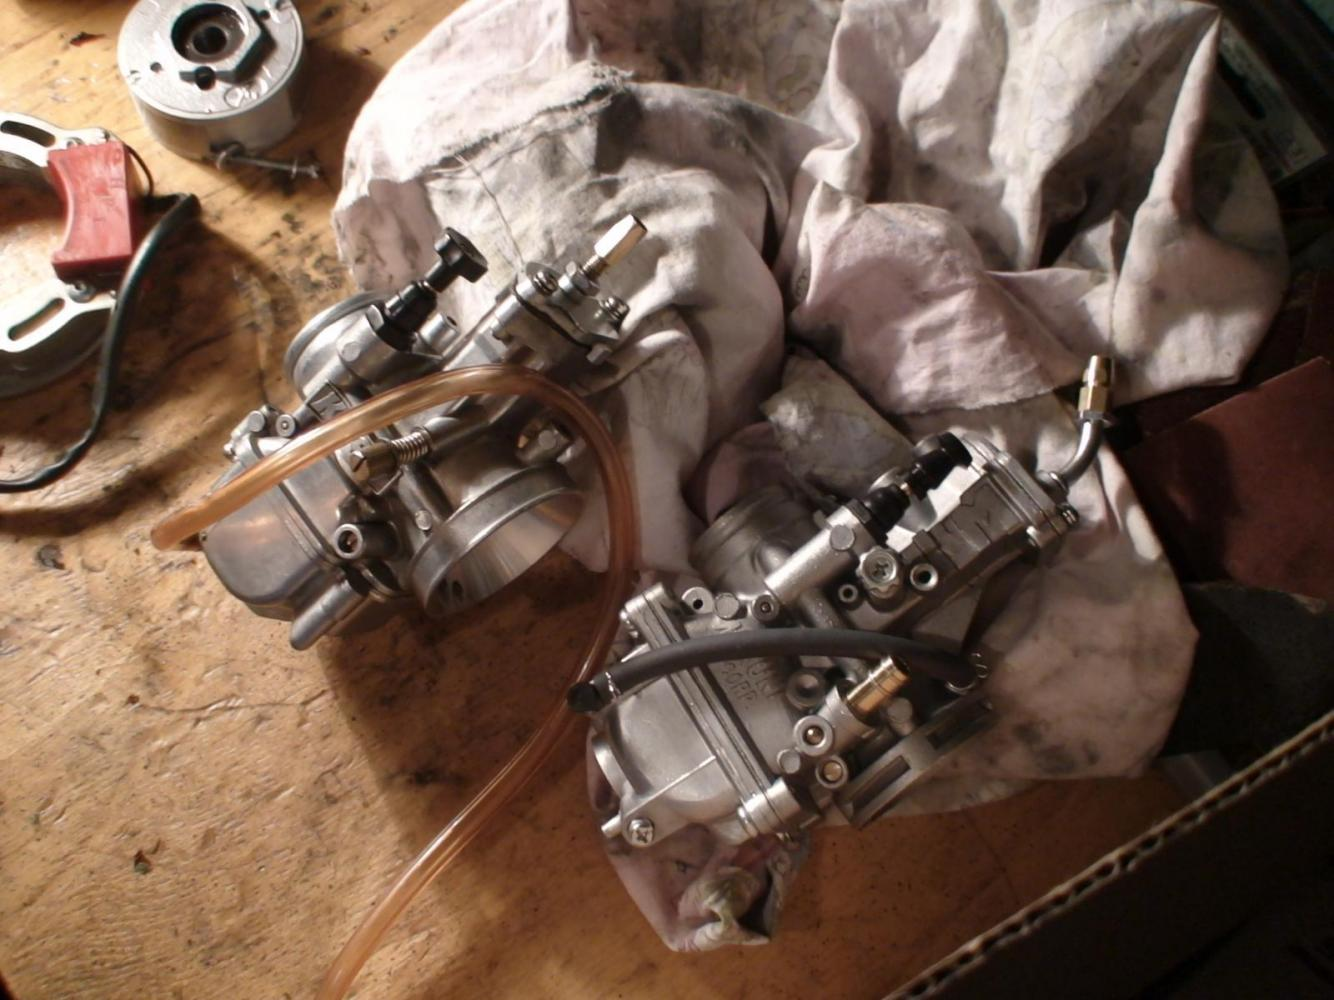 28KOSO Racing version vs. TMX 30 MIKUNI